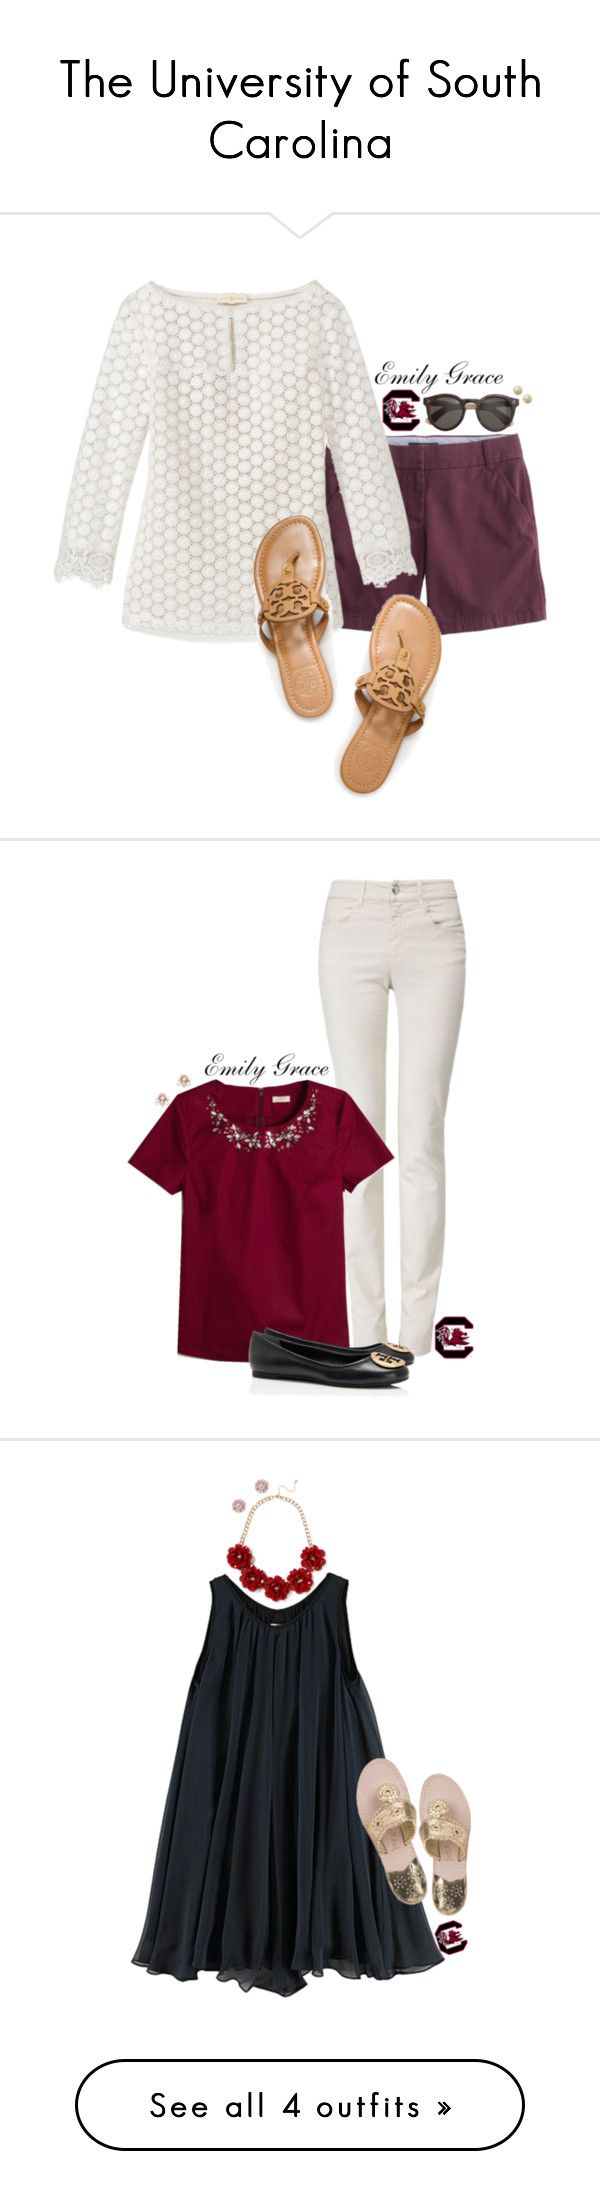 """The University of South Carolina"" by emilybelle98x ❤ liked on Polyvore"